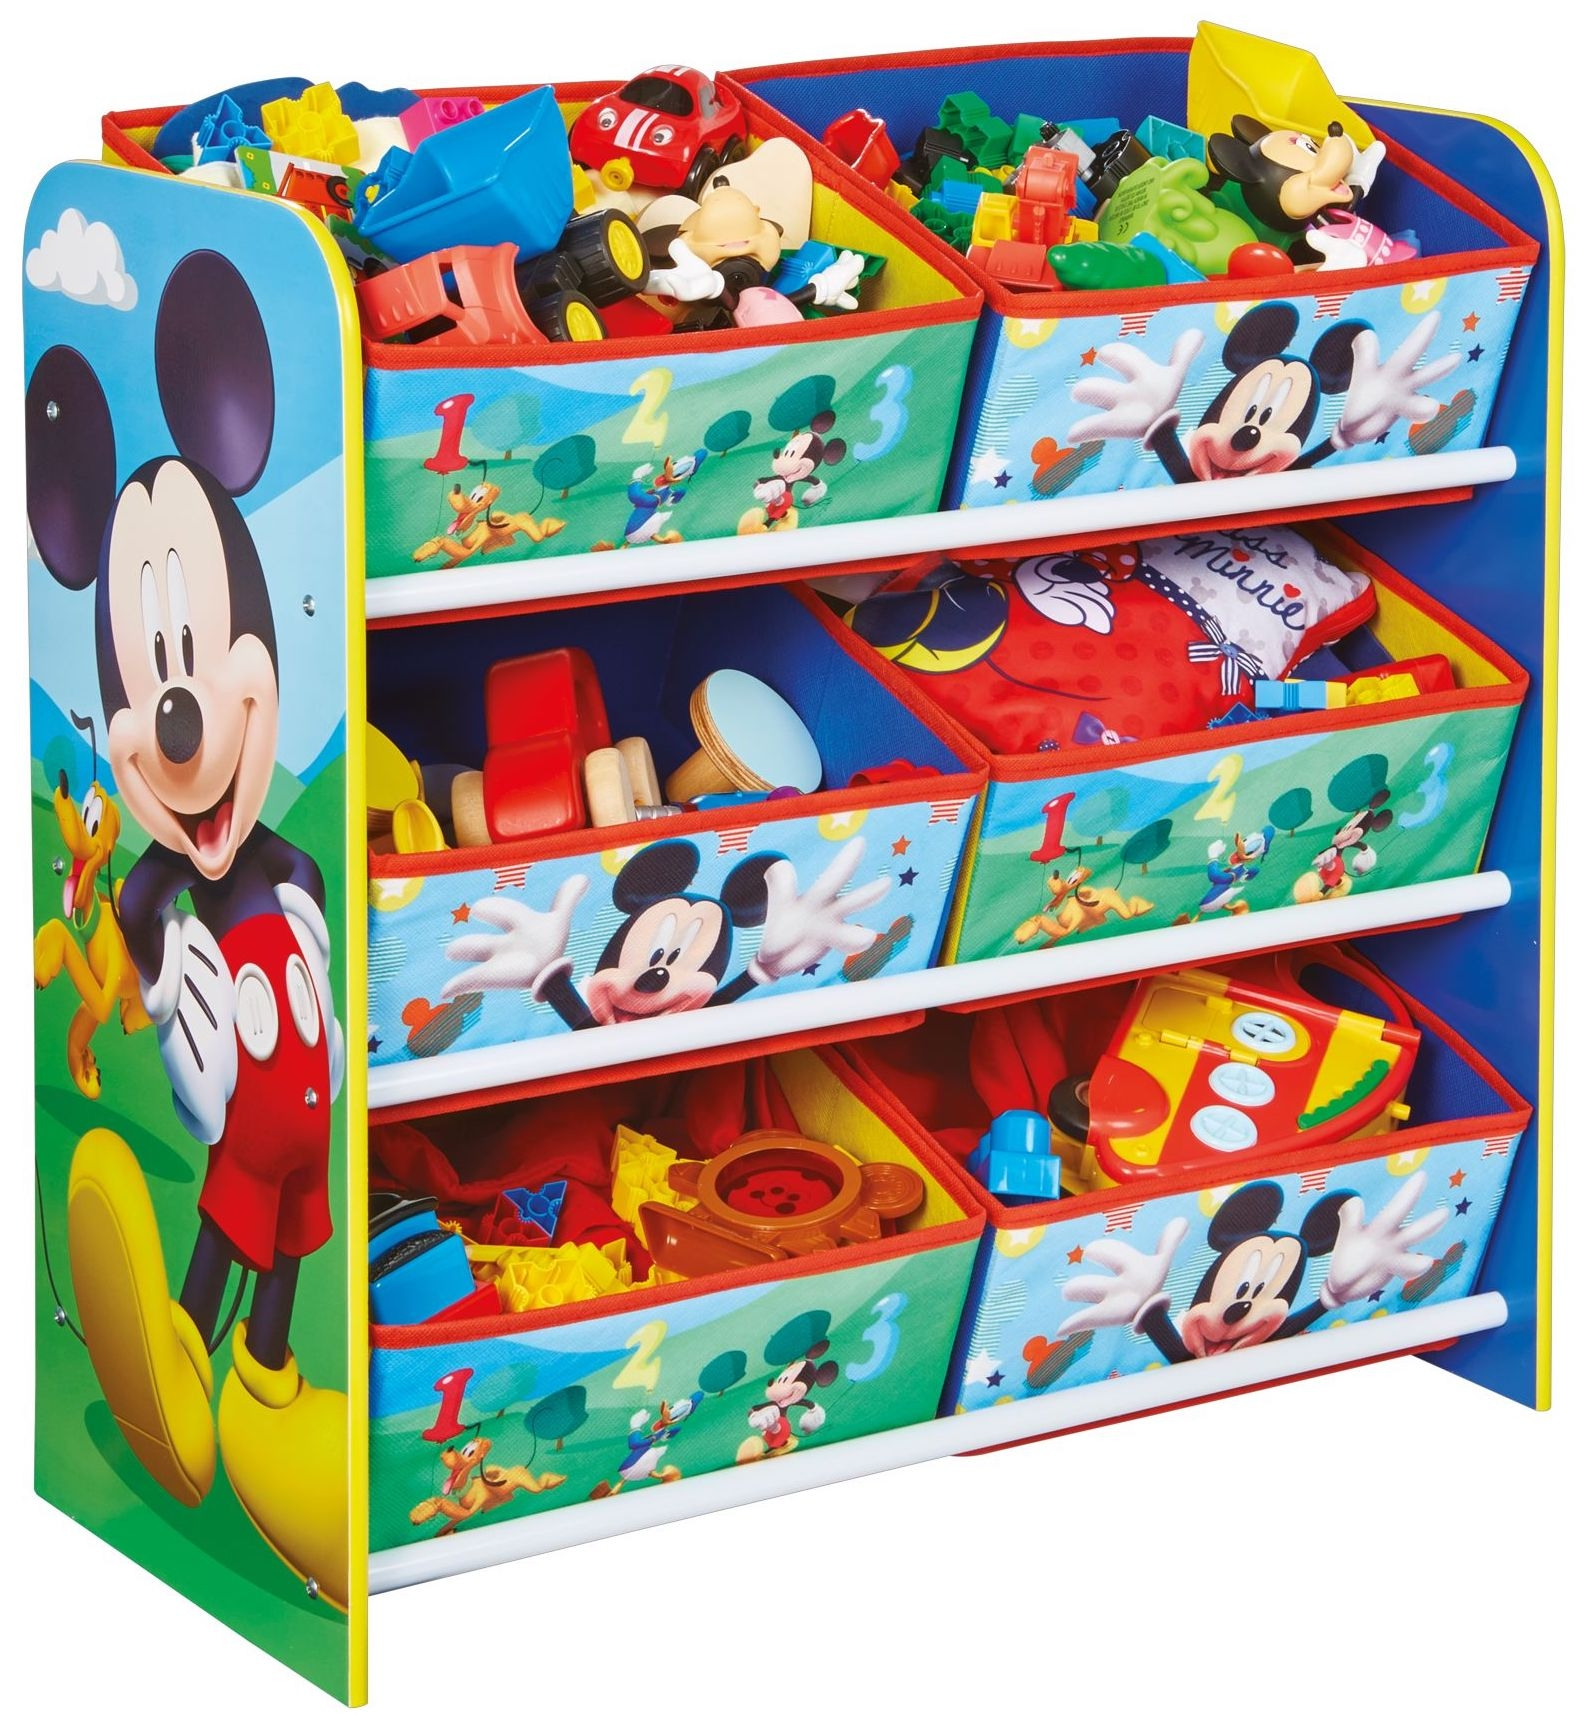 Tente mickey tente mickey with tente mickey mickey junior with tente mickey tente de jeu fort - Tente de jeu ikea ...